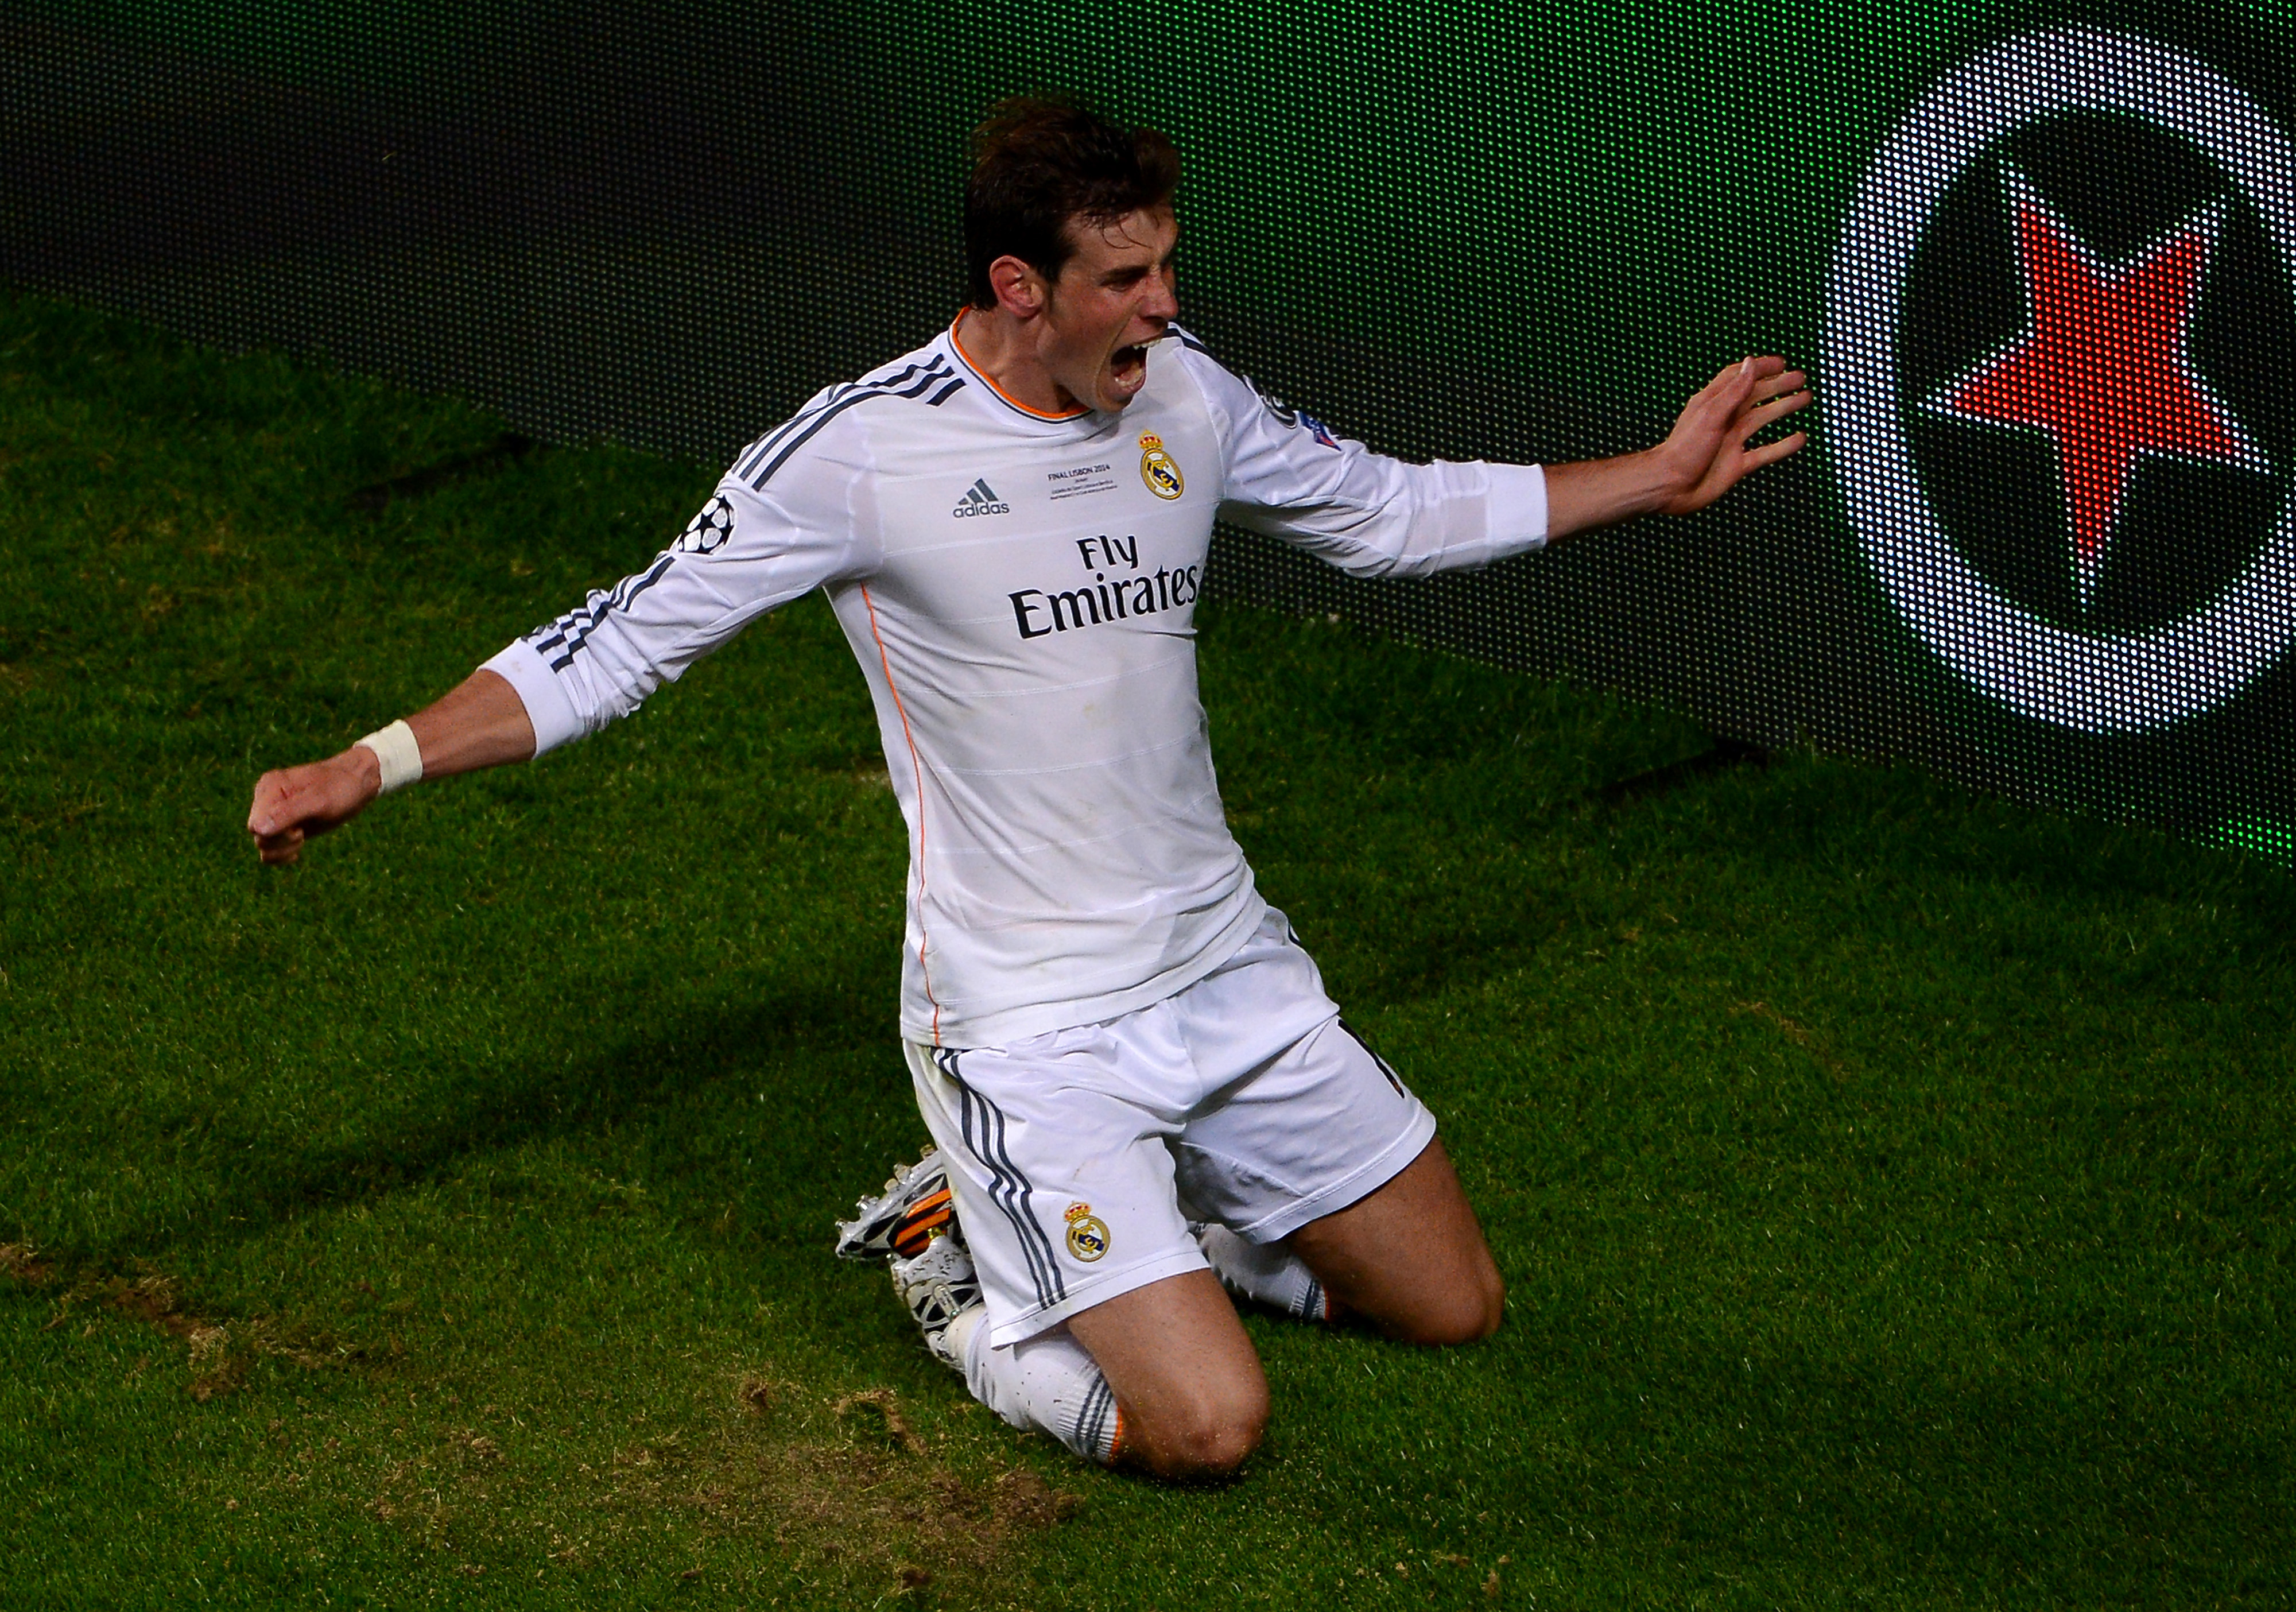 Real Madrid vs. Atlético Madrid, 2014 Champions League: Final score 4-1, Gareth Bale wins the Champions League for Los Blancos